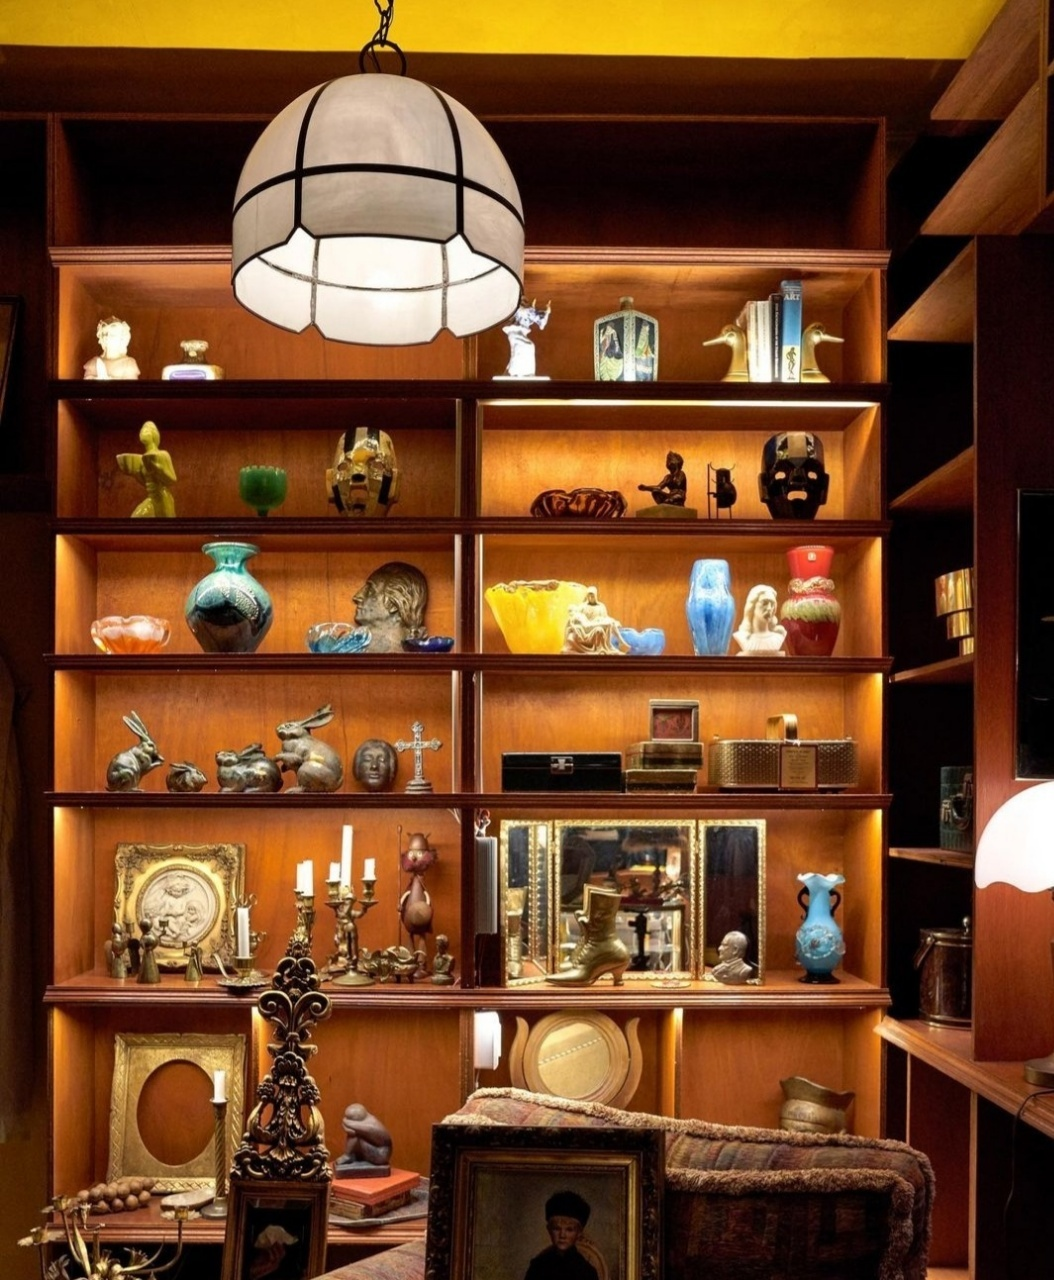 Antiques collected by Kim Ji-yeon on her travels abroad are up for sale at Ace Four House in Euljiro, Seoul. (Ace Four House Instagram)